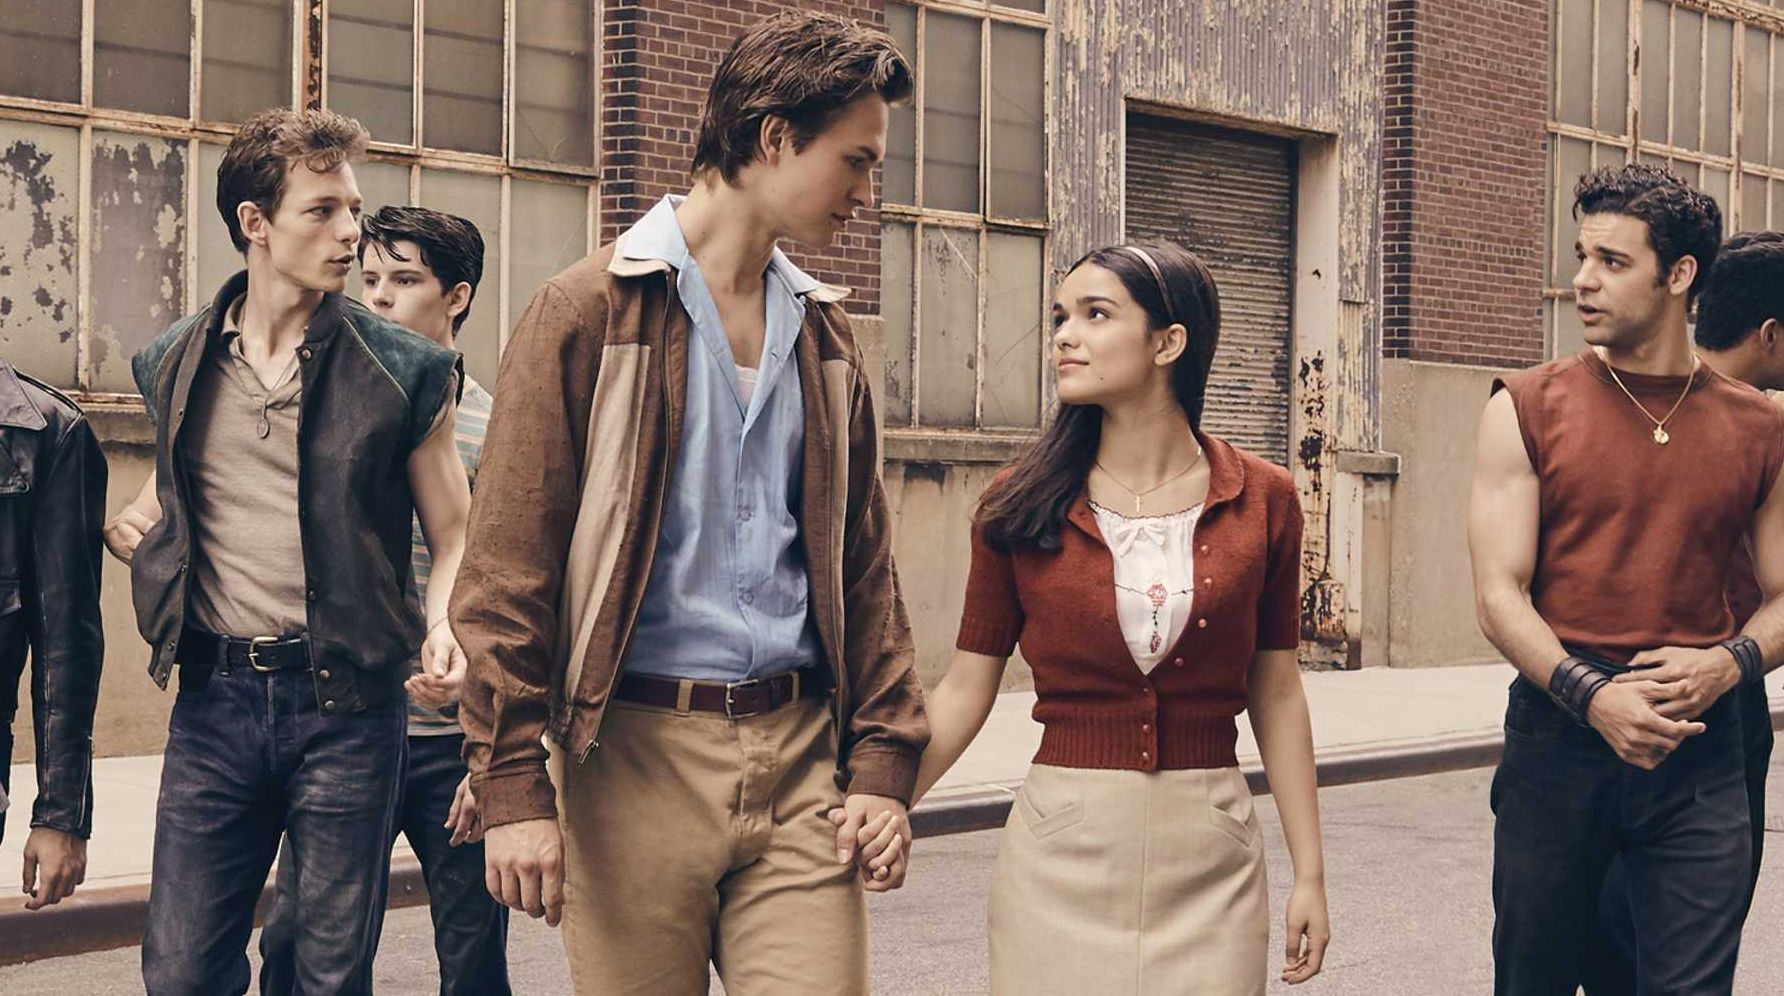 'West Side Story' - 20th Century Fox